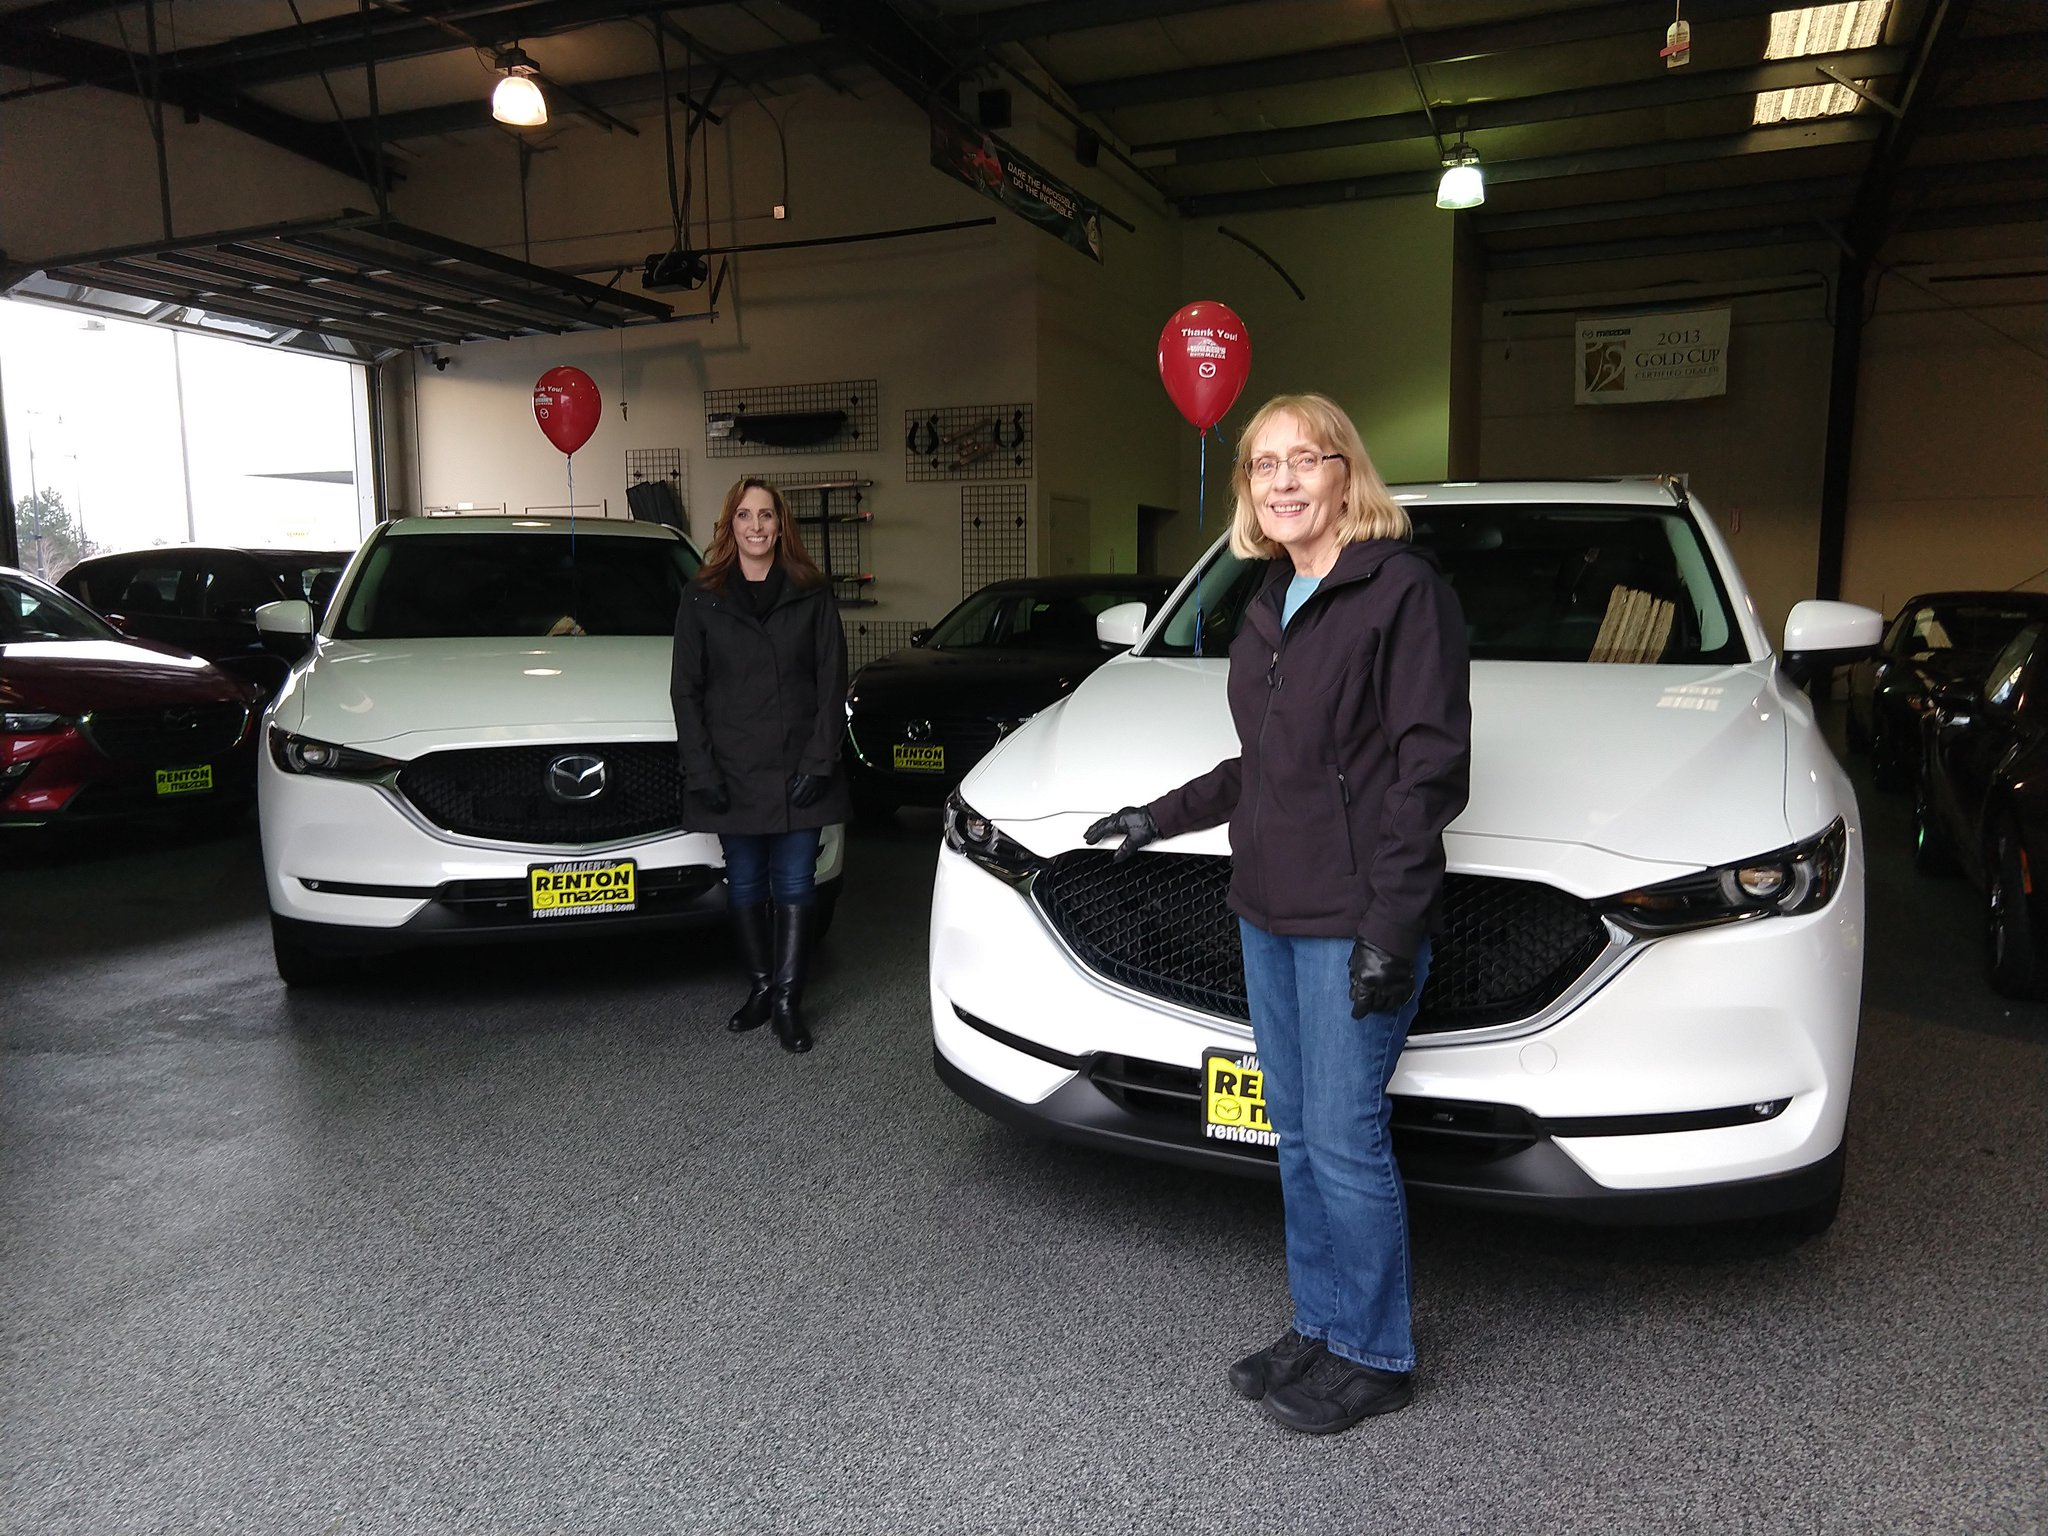 walker s renton mazda on twitter janet and linda who are mother and daughter bought matching cx 5s what a great decision congrats twitter